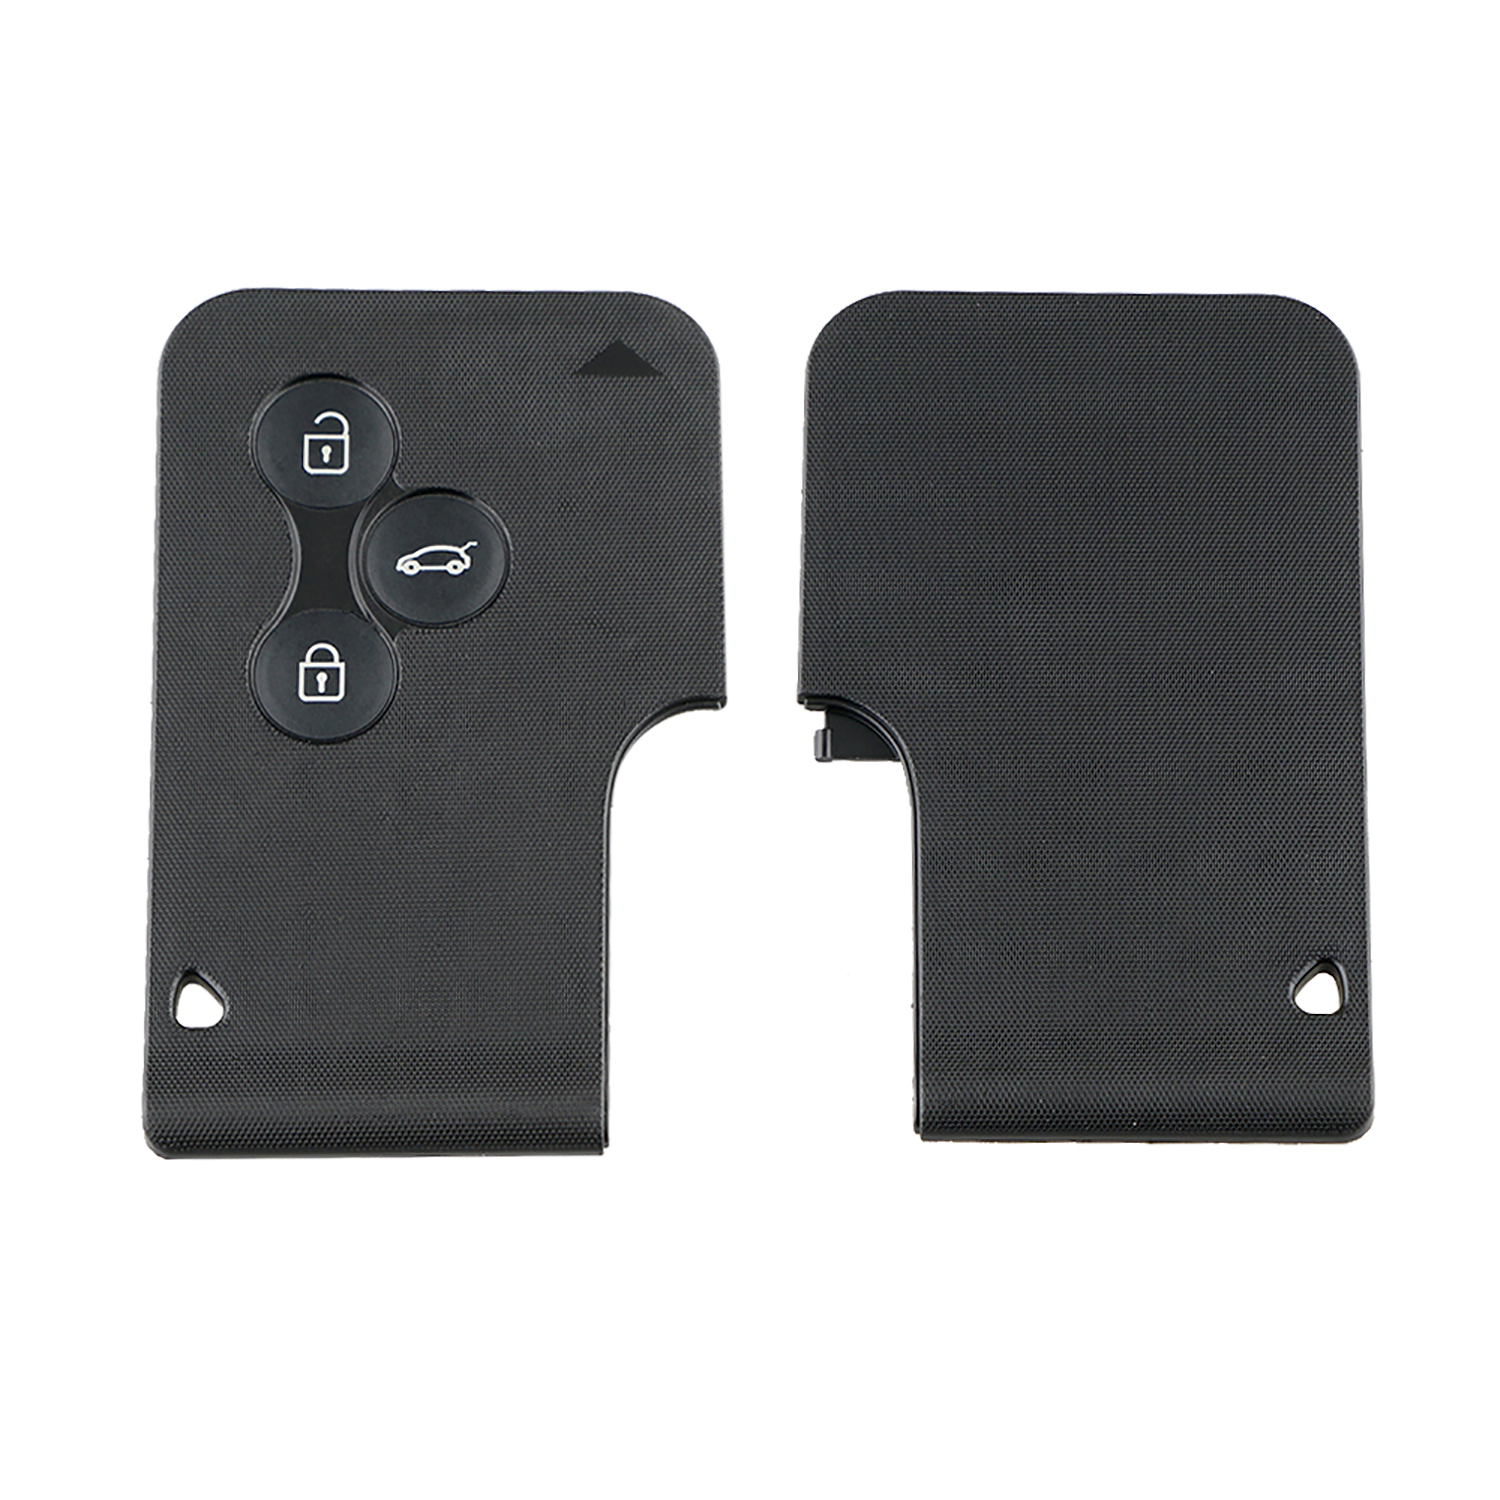 Image 3 - 3Buttons Smart Remote Key Keyless Fob For Renault Megane 2003 2004 2005 2006 2007 2008 With PCF7947 Chip 433Mhz Original Key-in Car Key from Automobiles & Motorcycles